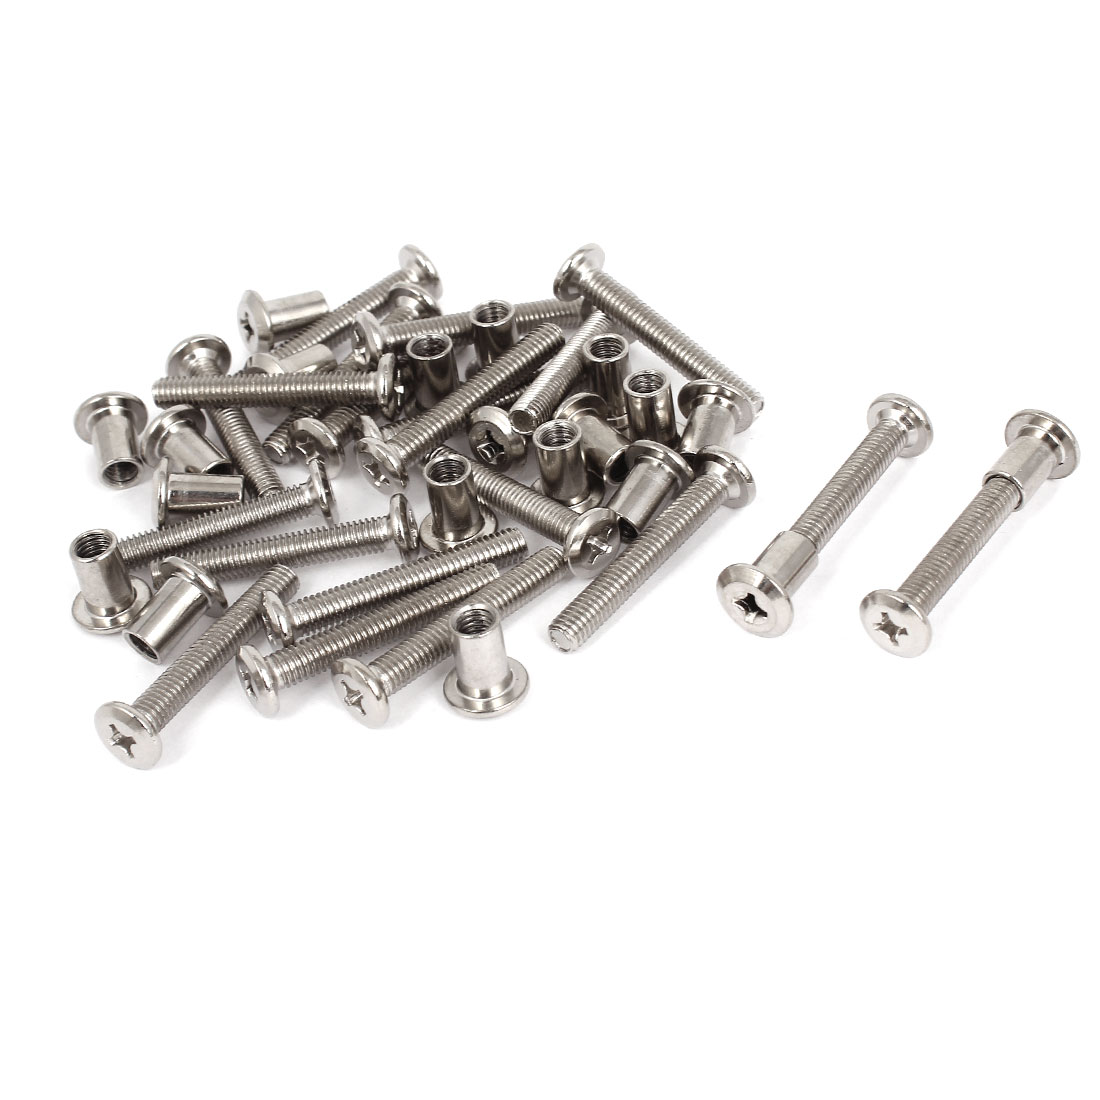 Furniture Hardware 6mmx40mm Phillips Countersunk Screw Bolts Barrel Nuts 20 Sets